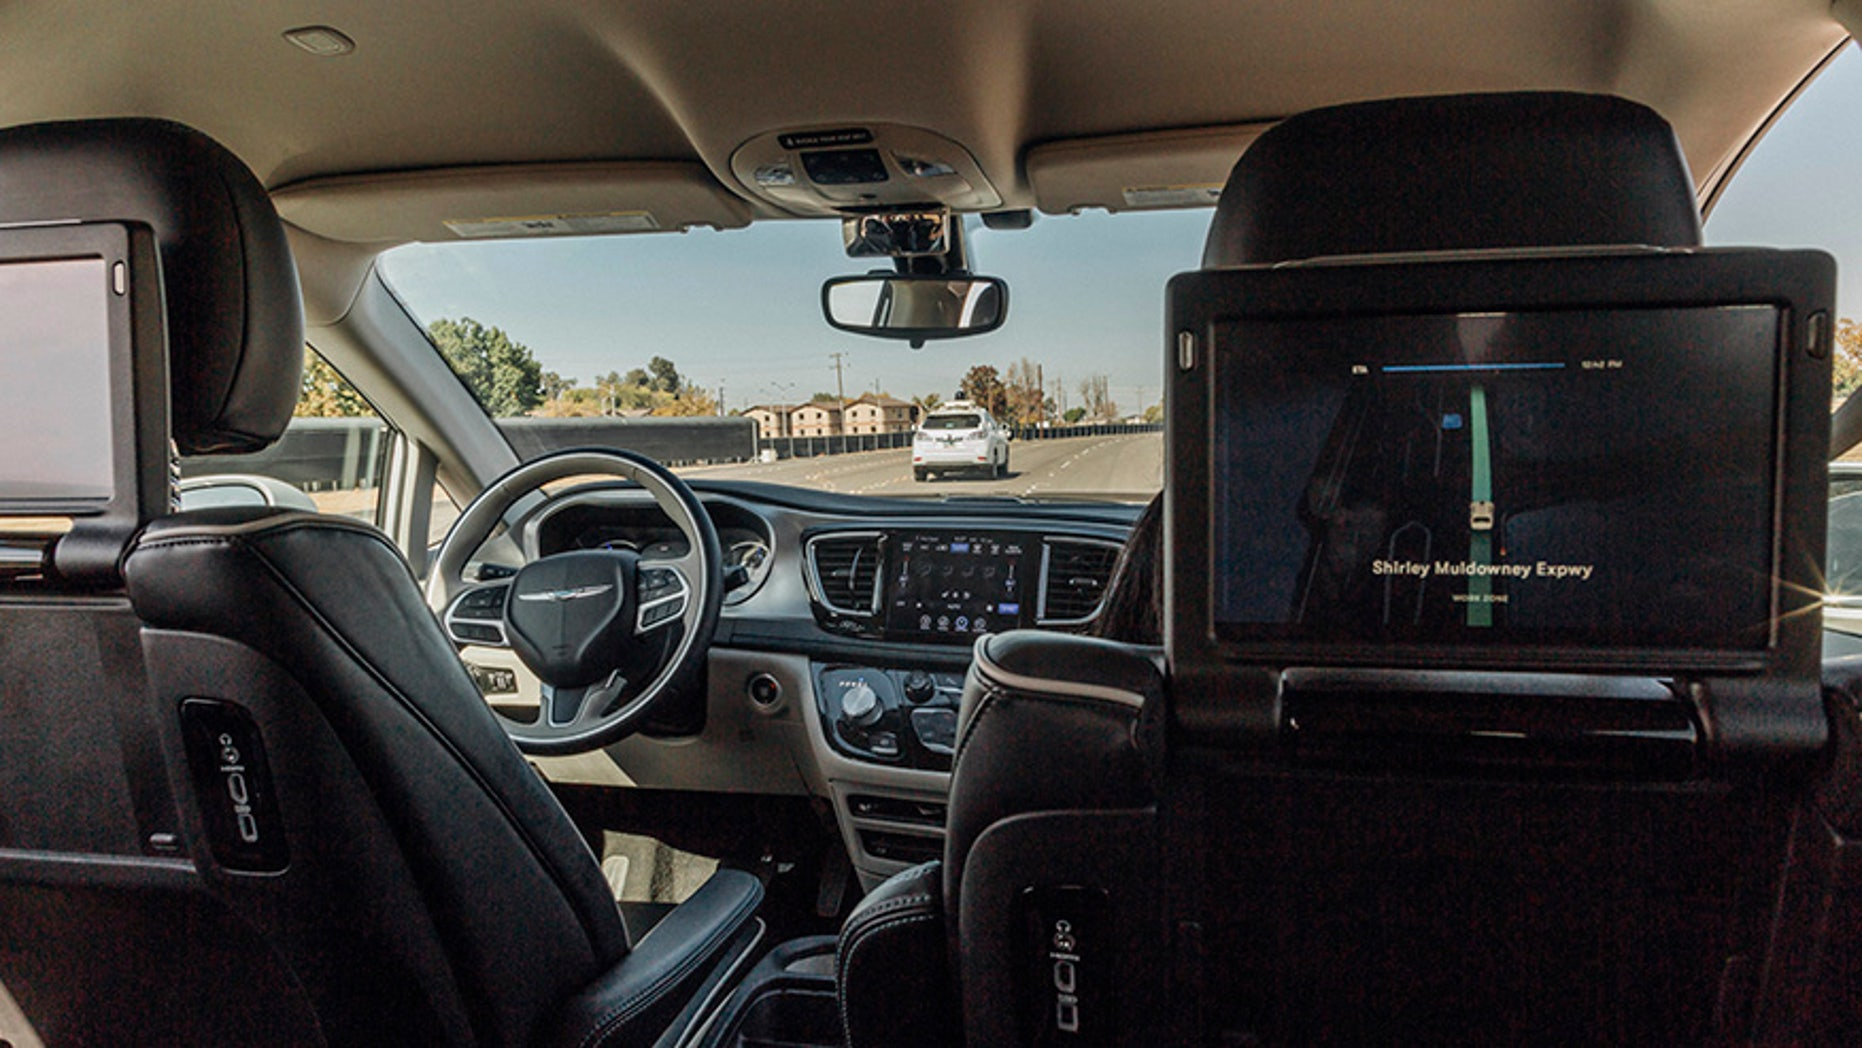 The Waymo Chrysler Pacifica is capable of fully autonomous driving.